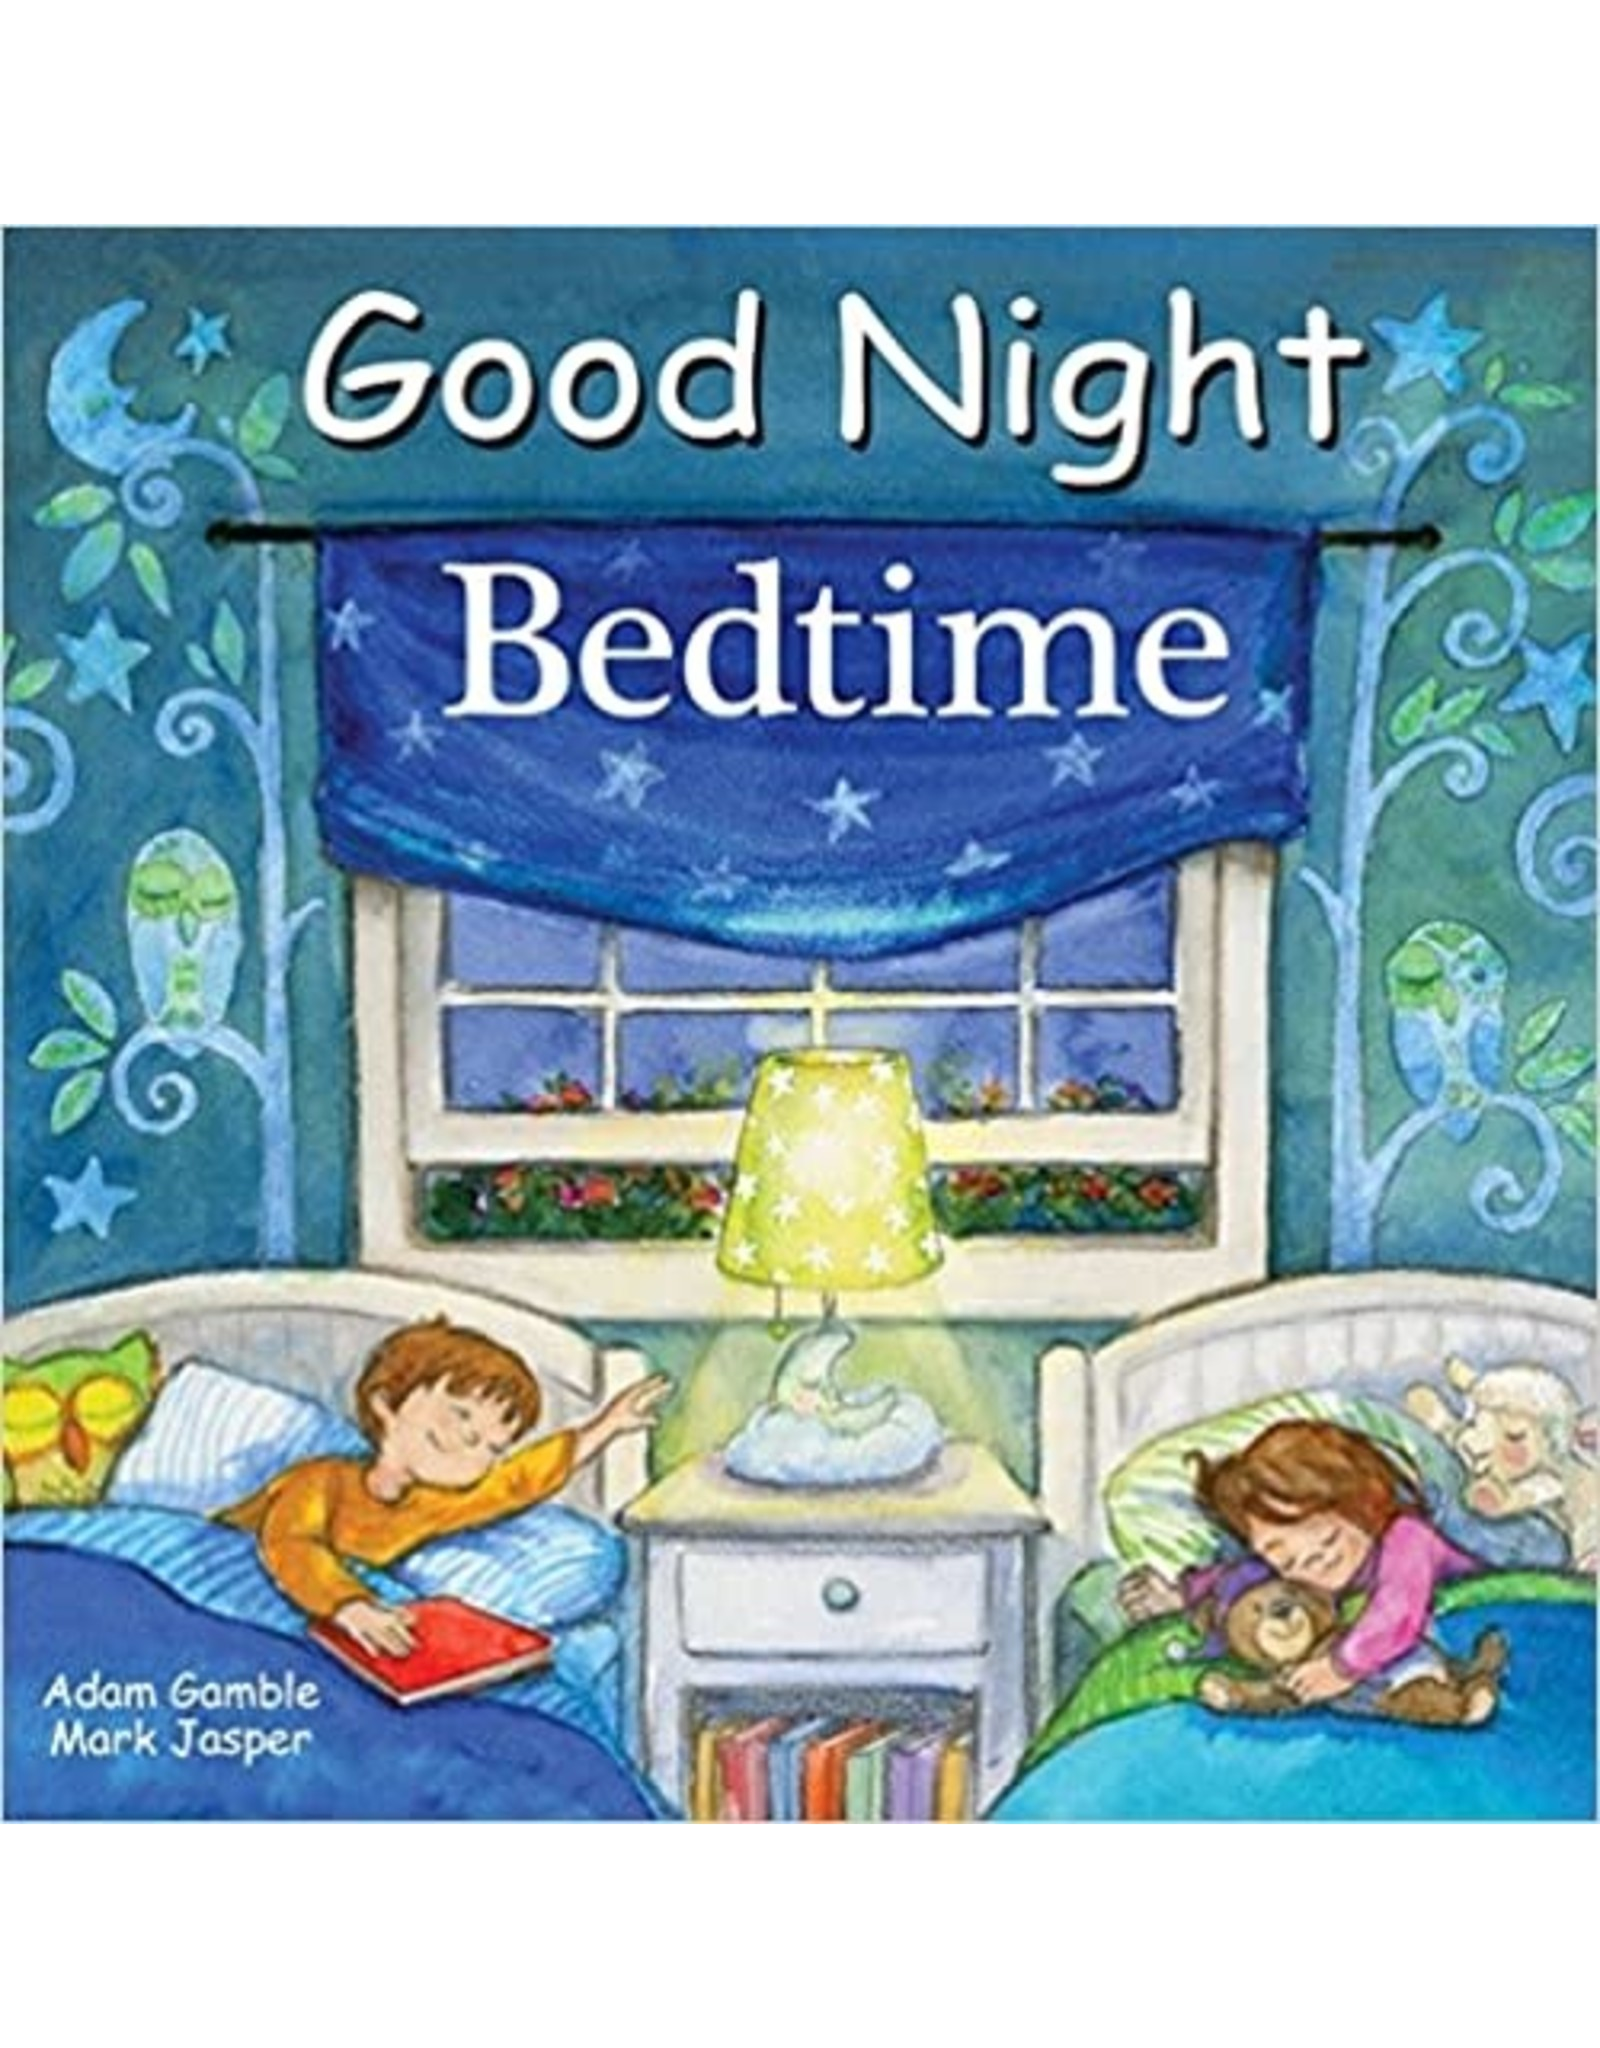 Goodnight Bedtime Book